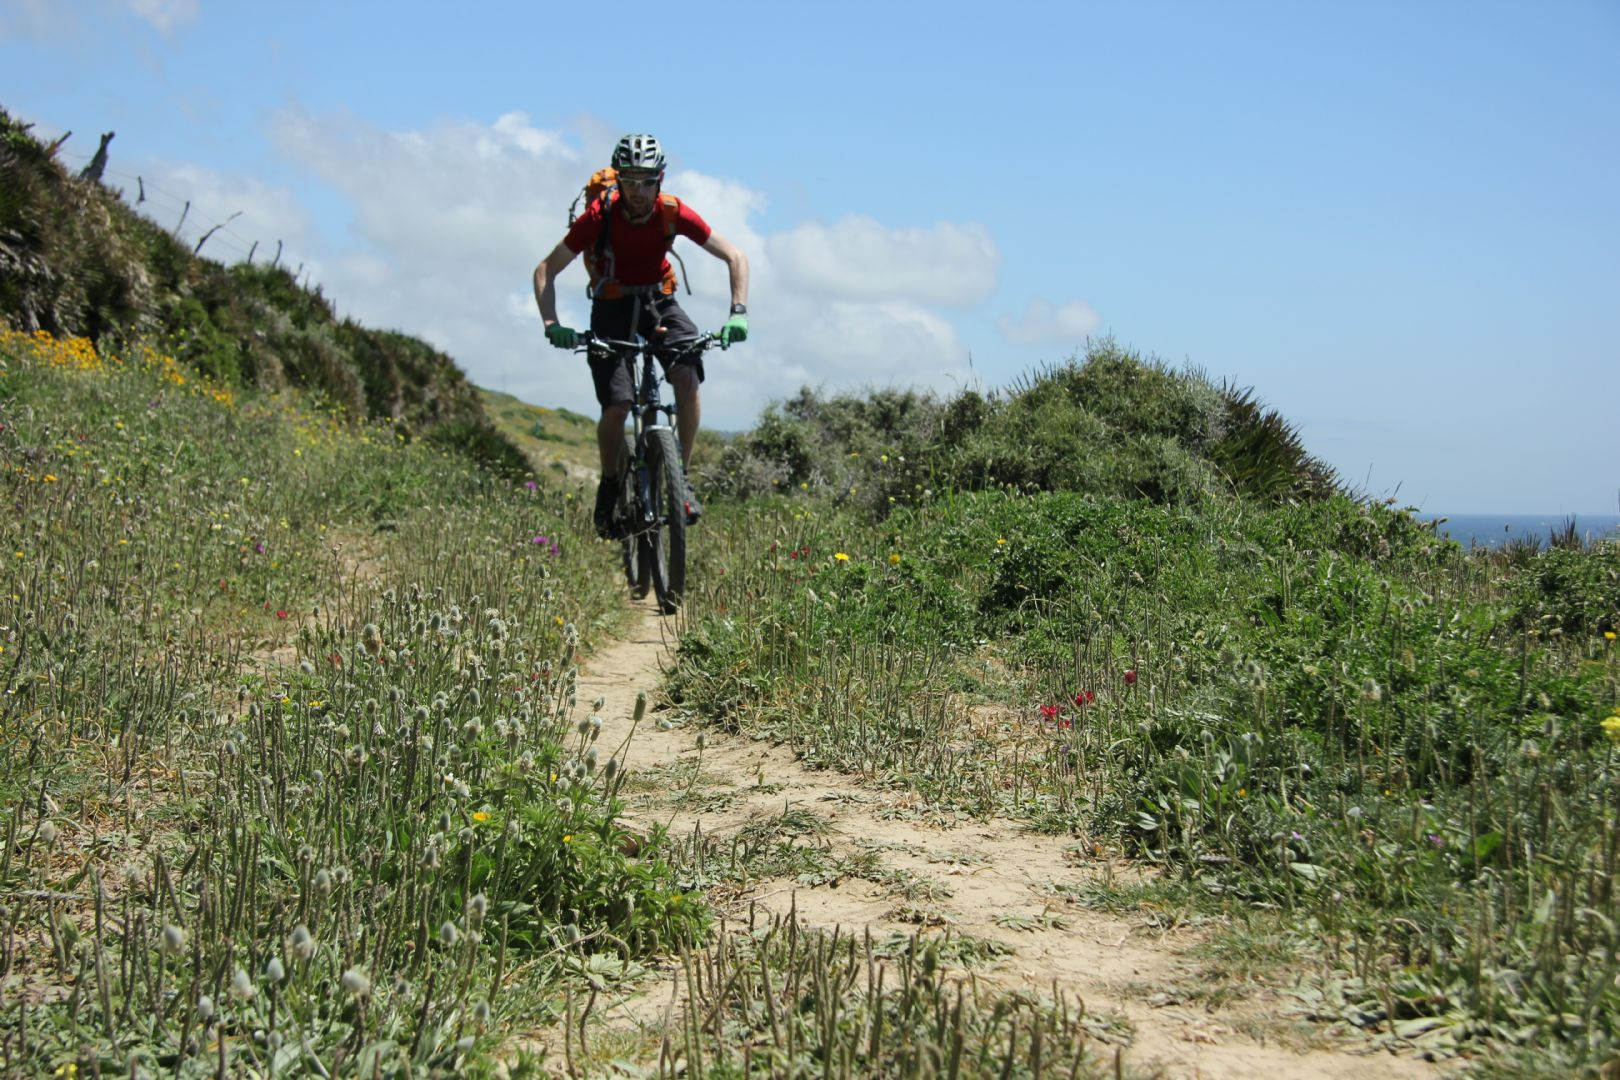 mountain-biking-holiday-in-spain-andalucia-mtb.jpg - Spain - Sensational Sierra Nevada - Mountain Biking